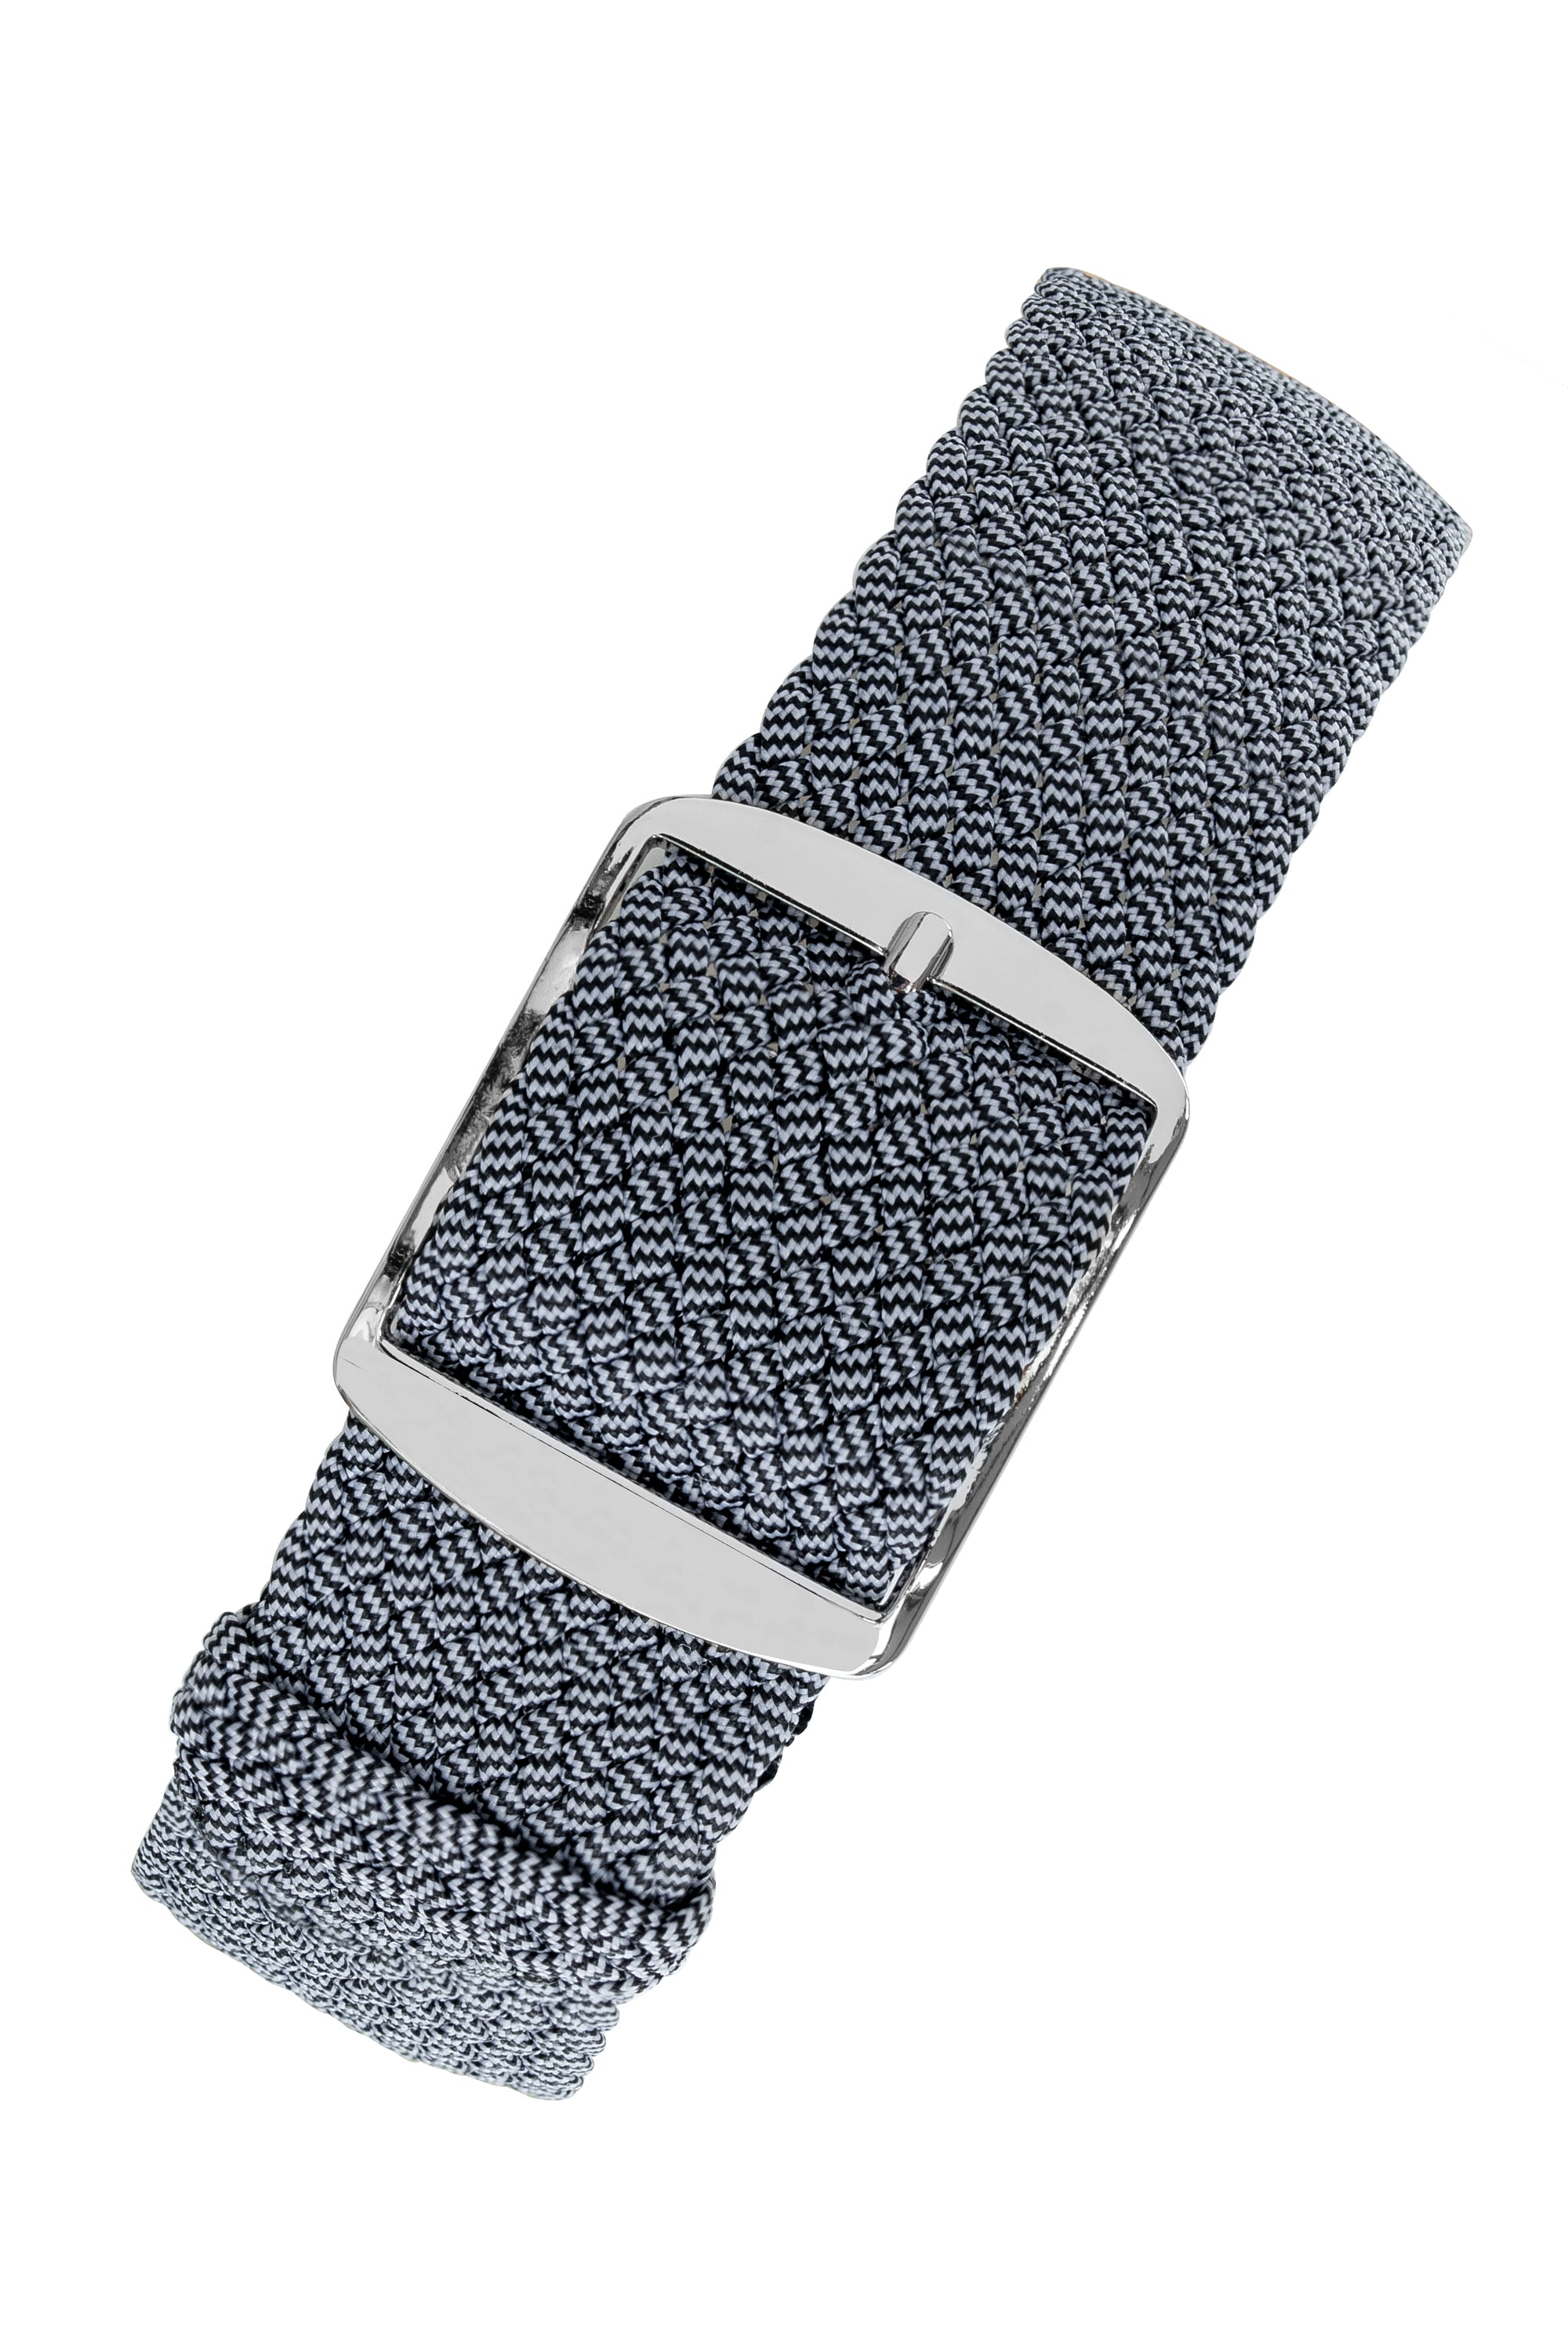 MELANGE PERLON Braided Watch Strap & Buckle in MOONLIGHT GREY